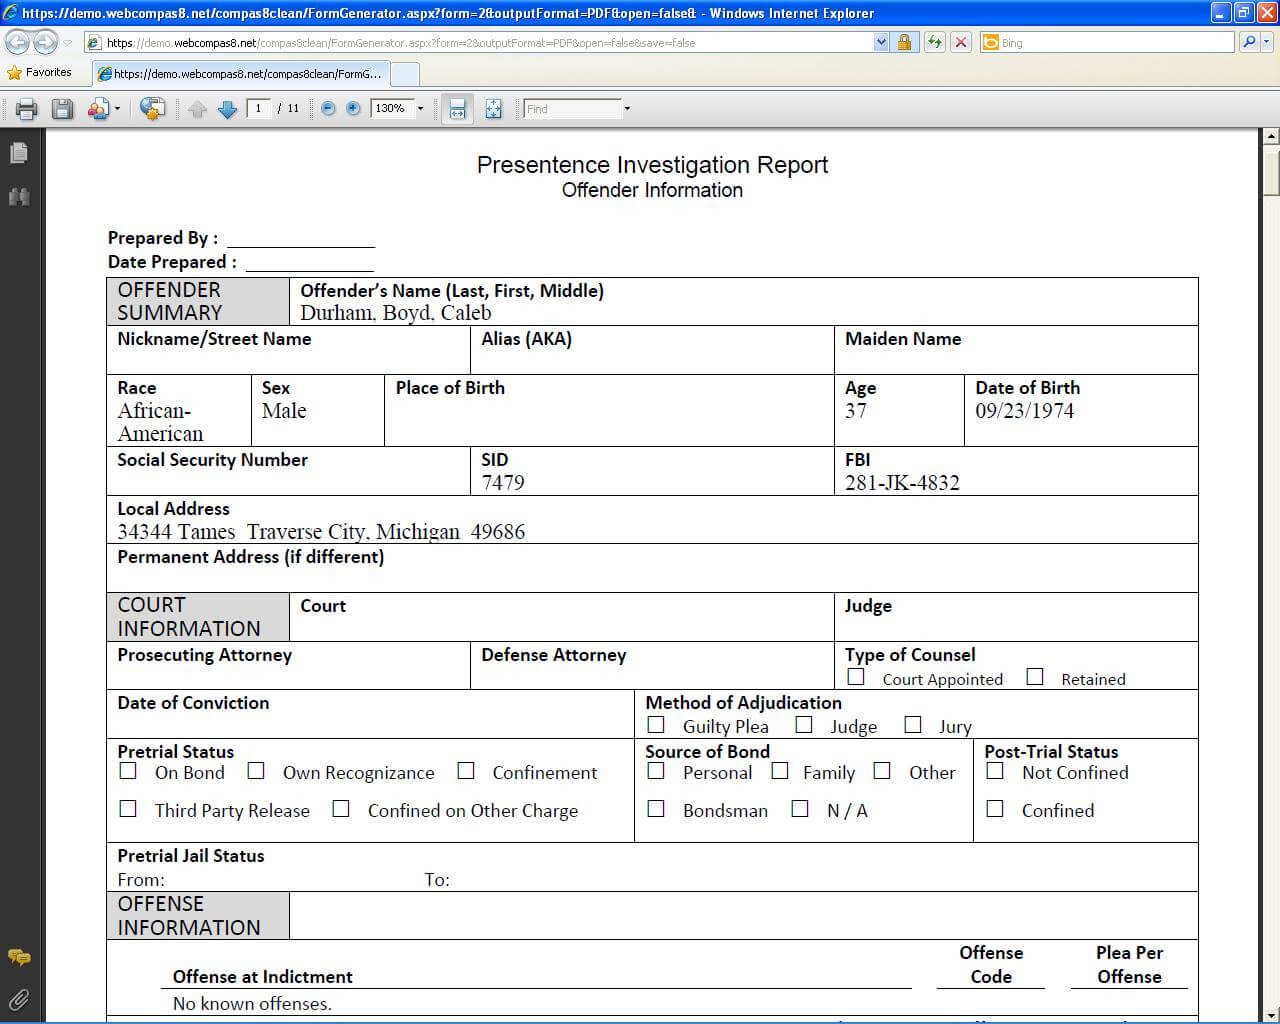 Presentence Investigation Report Template - Atlantaauctionco with regard to Presentence Investigation Report Template